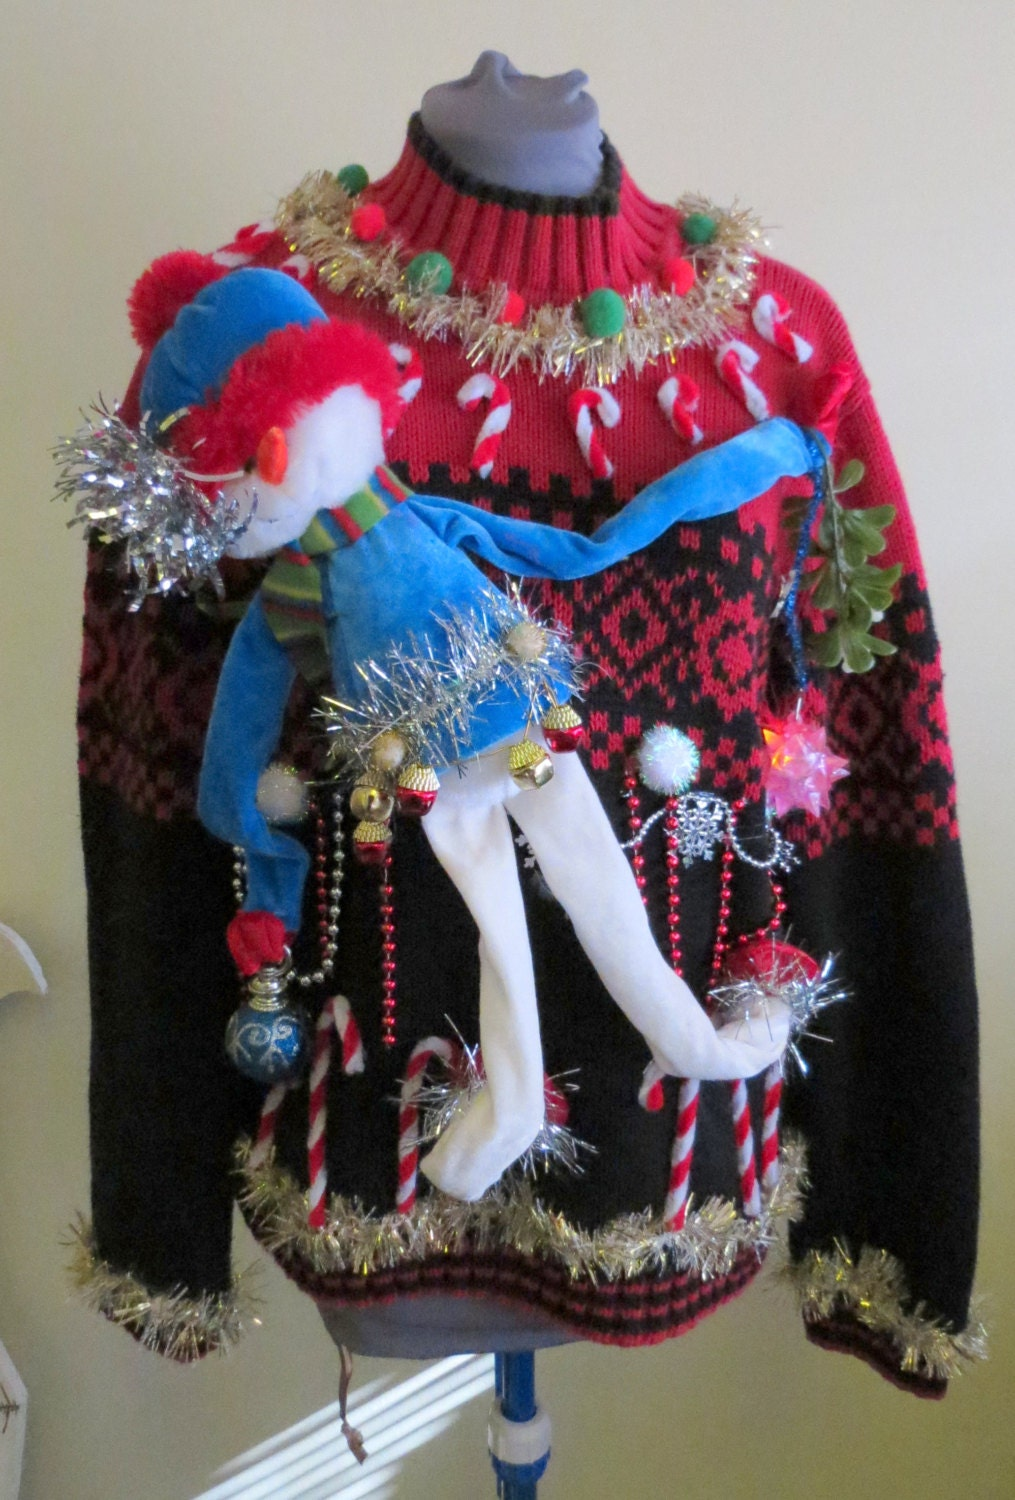 Hilarious Tacky Ugly Christmas Sweater With